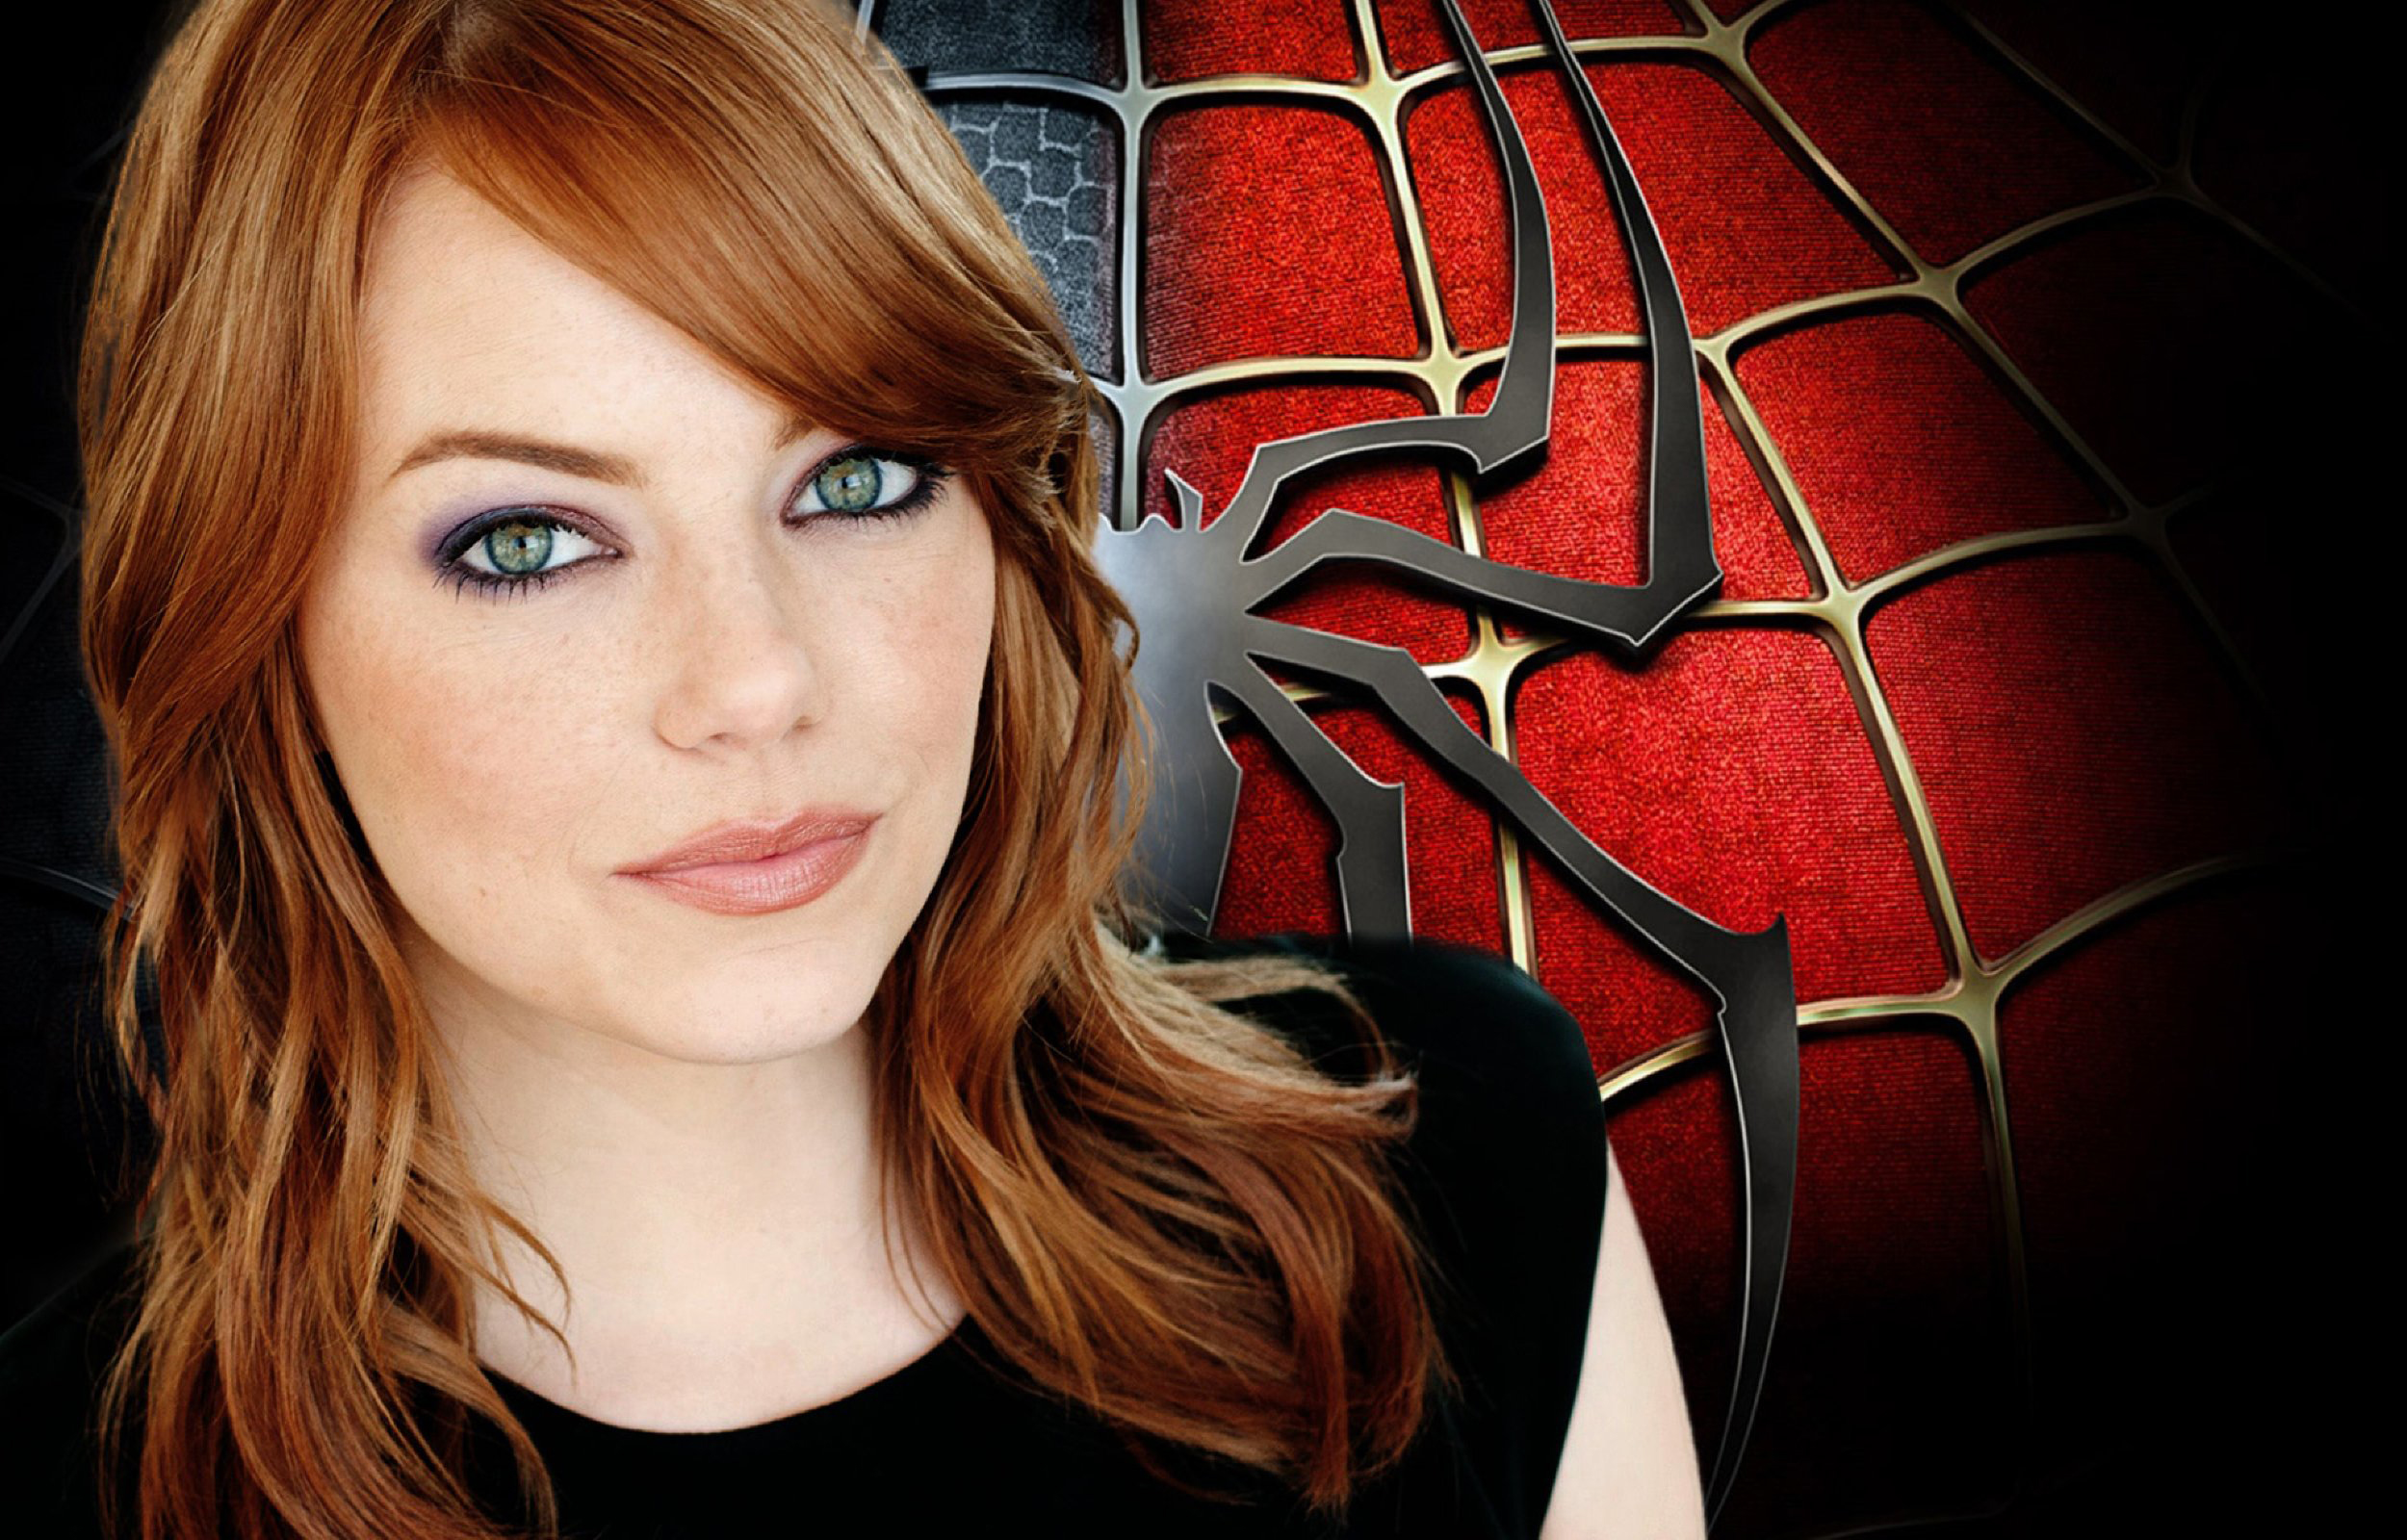 free emma stone nice face look with spyder background still download mobile images hd